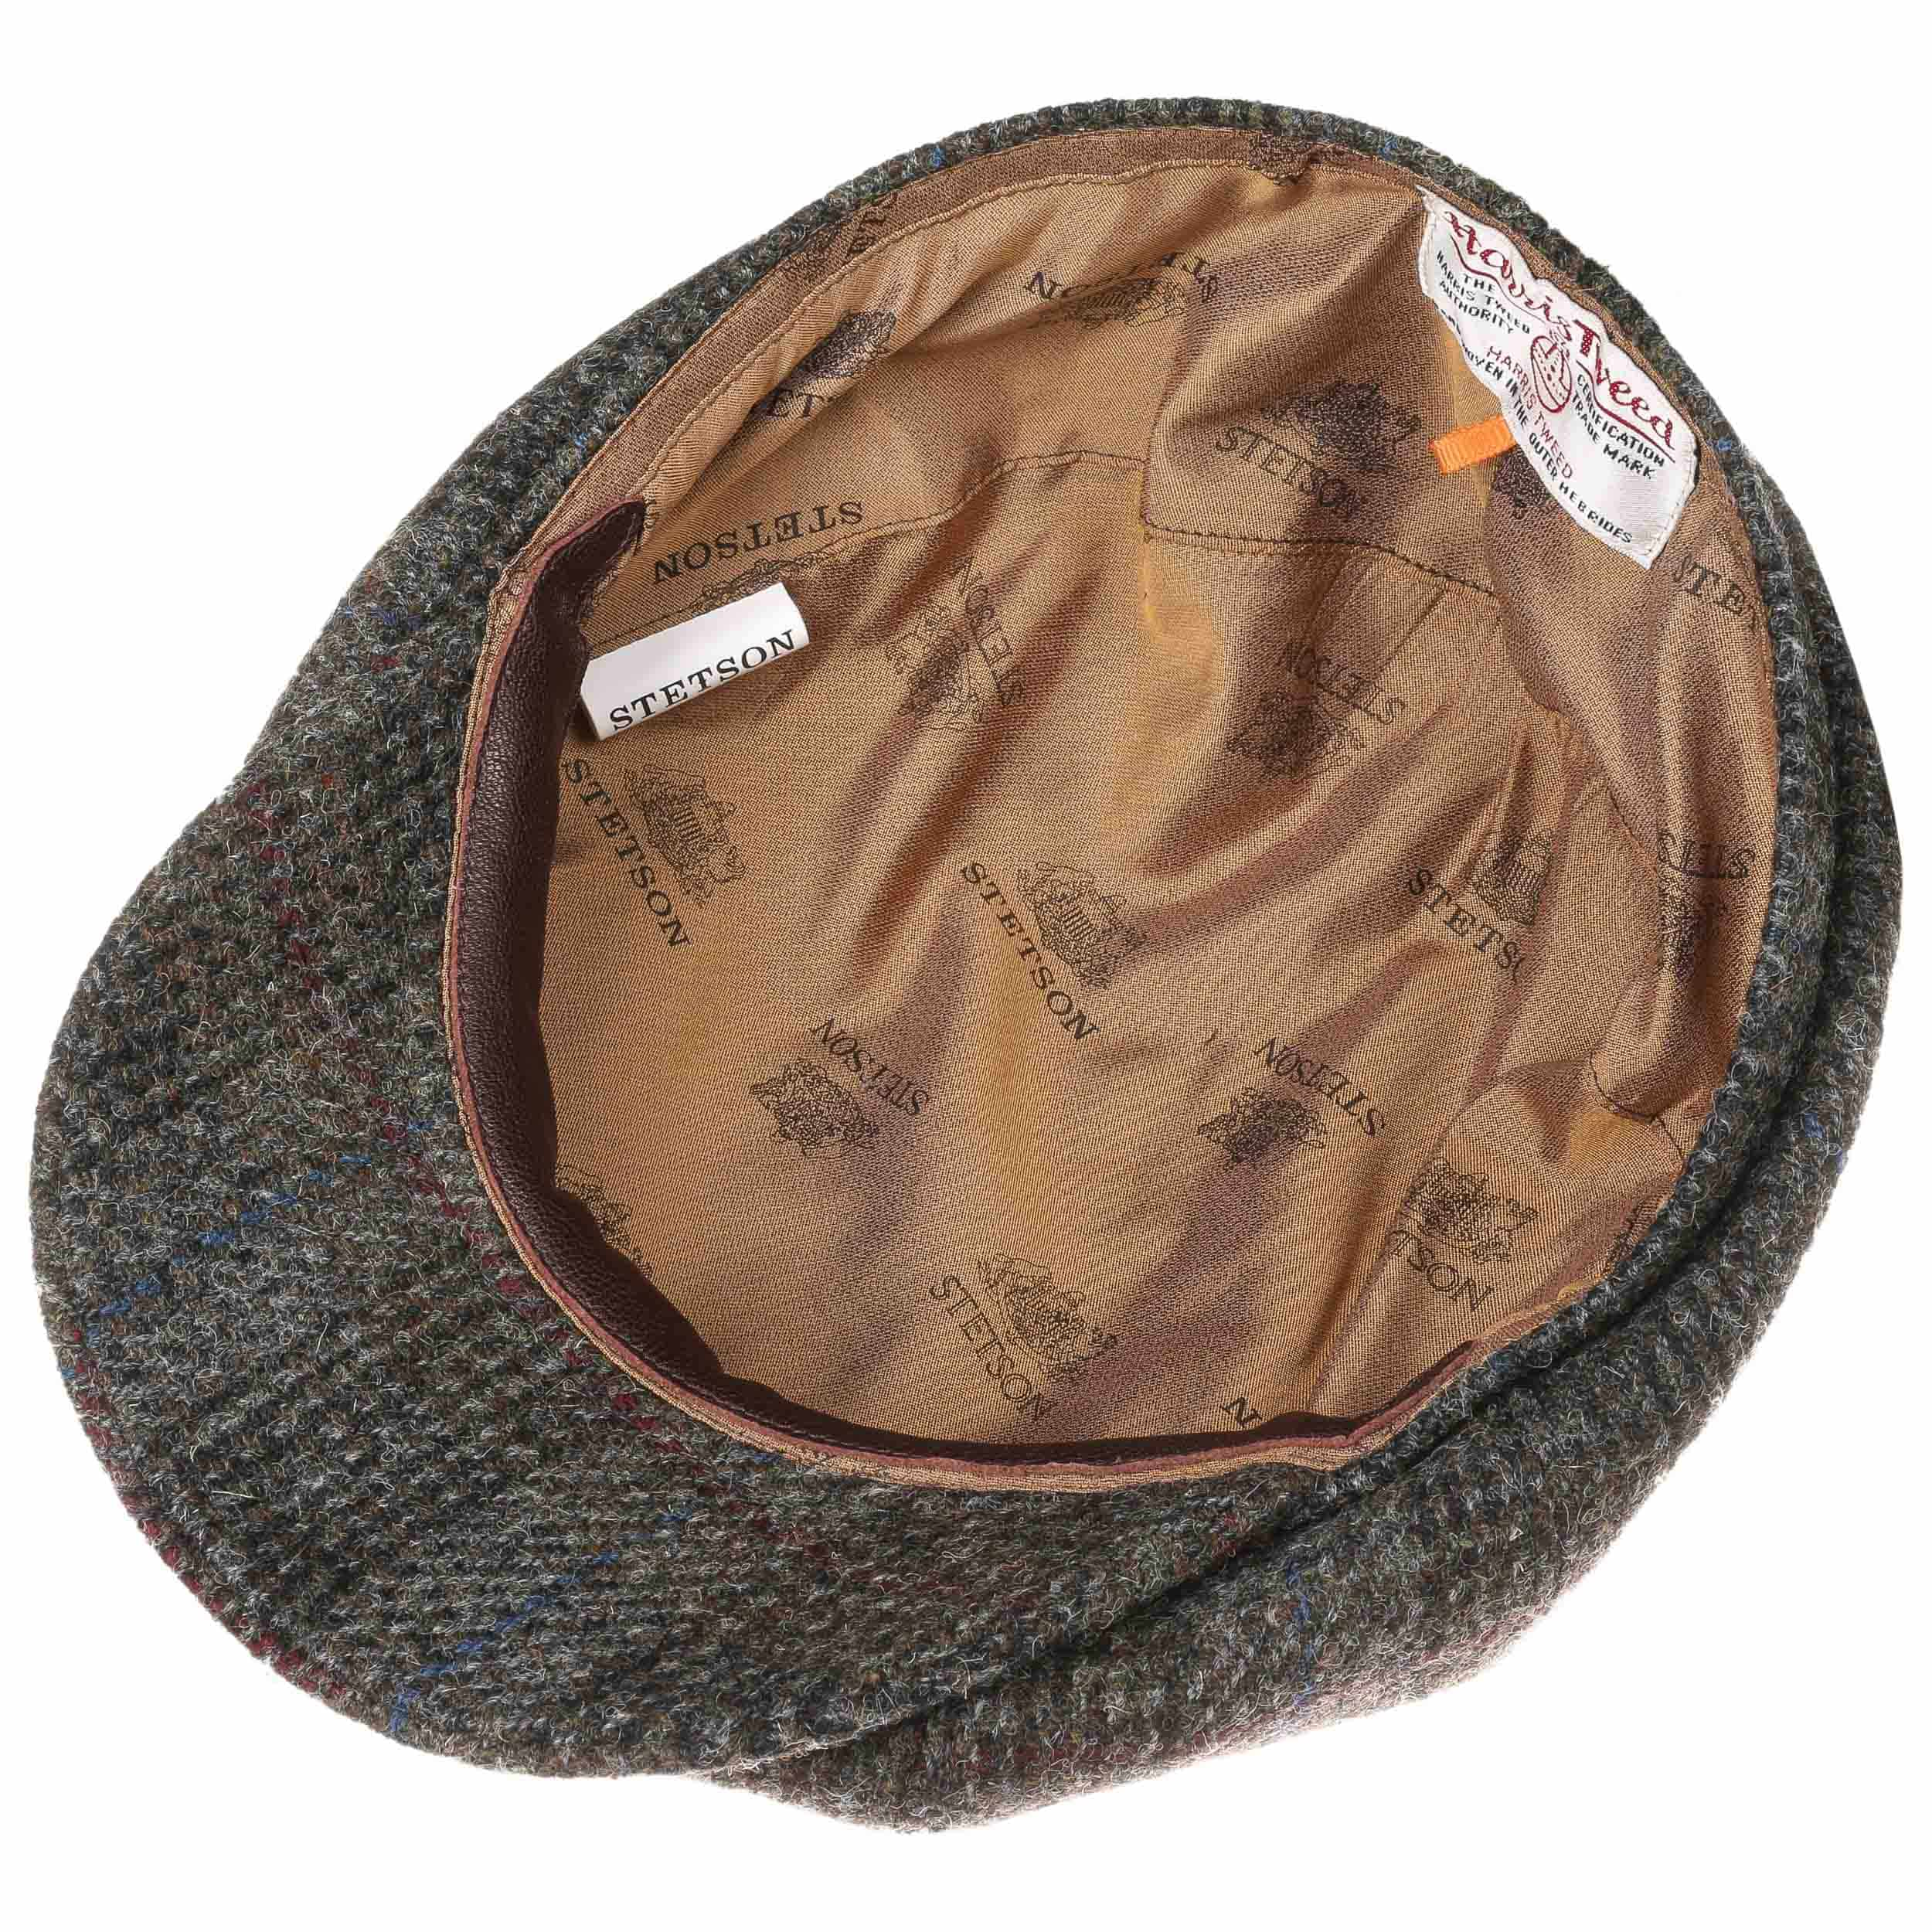 ... Hatteras Harris Tweed Check Flat Cap by Stetson - grey 2 ... e8e807a7fd70